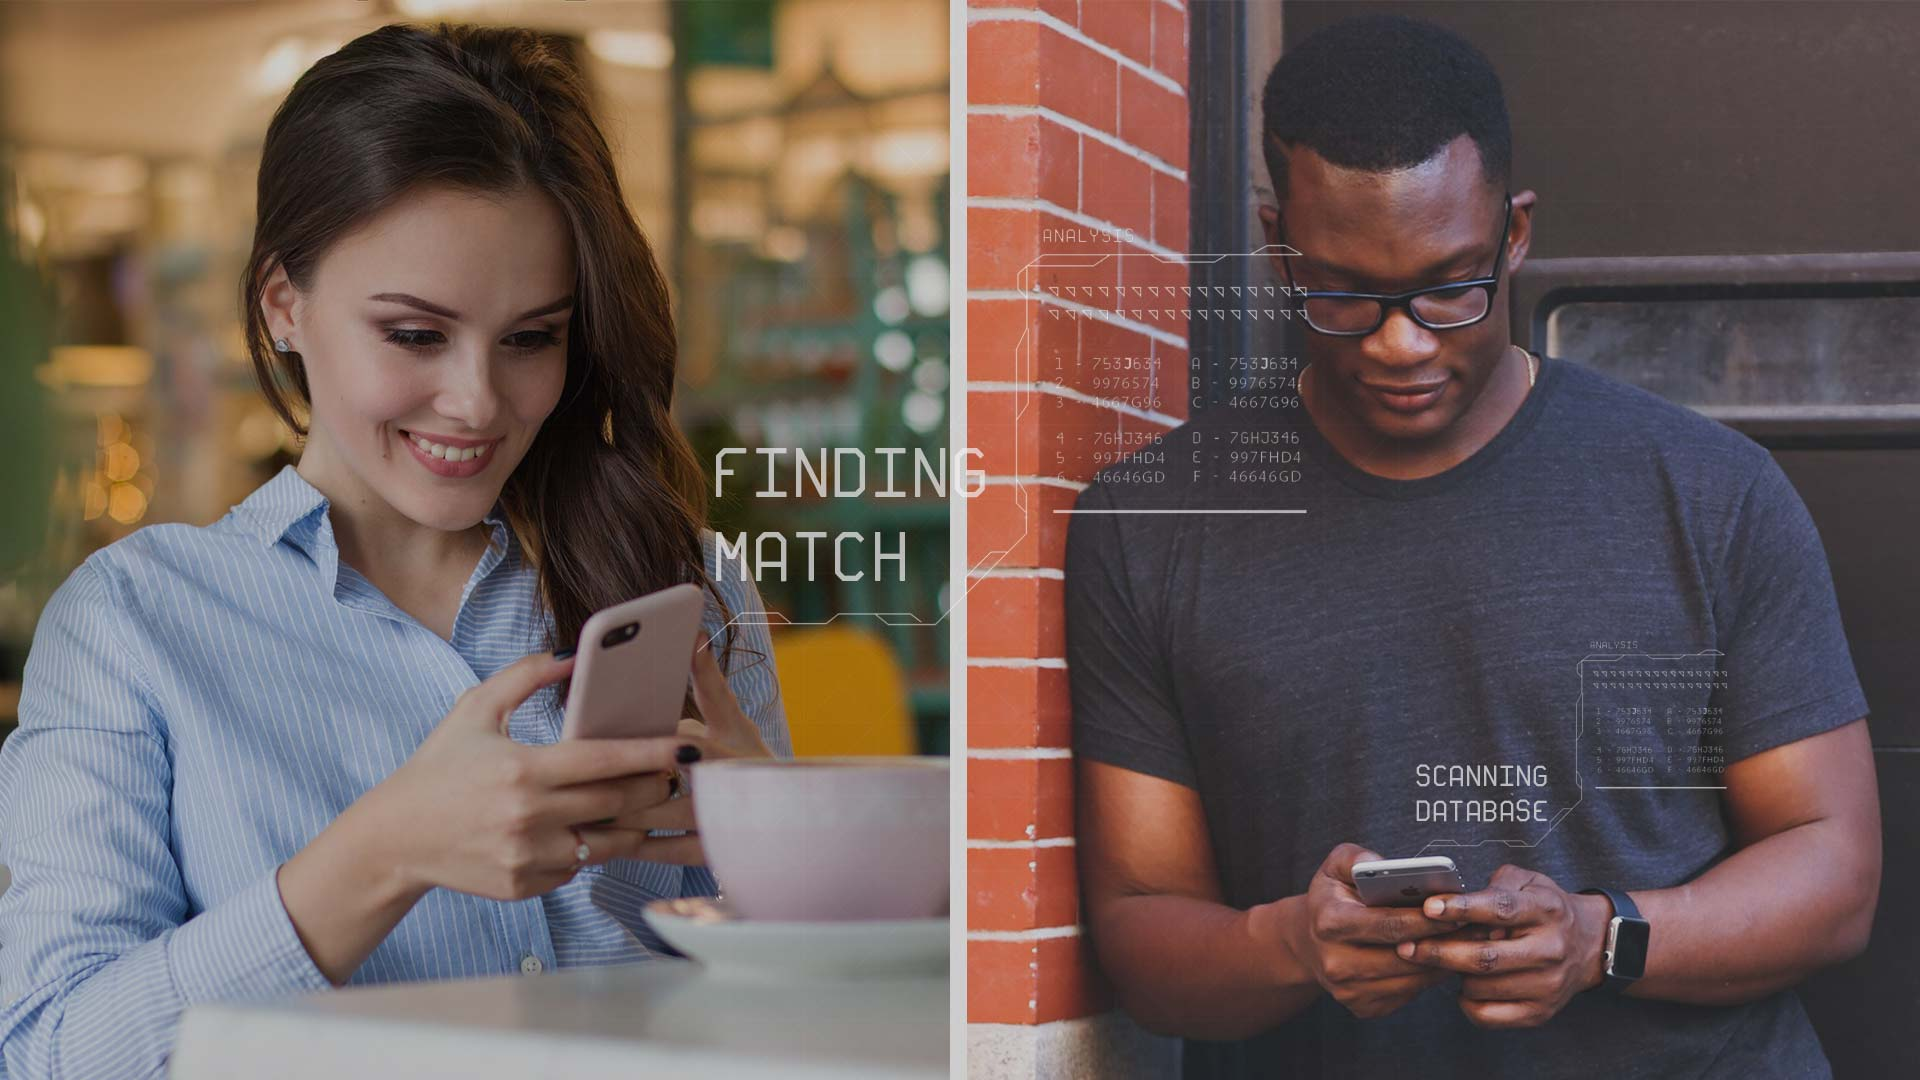 Love is in the air: AI, apps and matchmaking